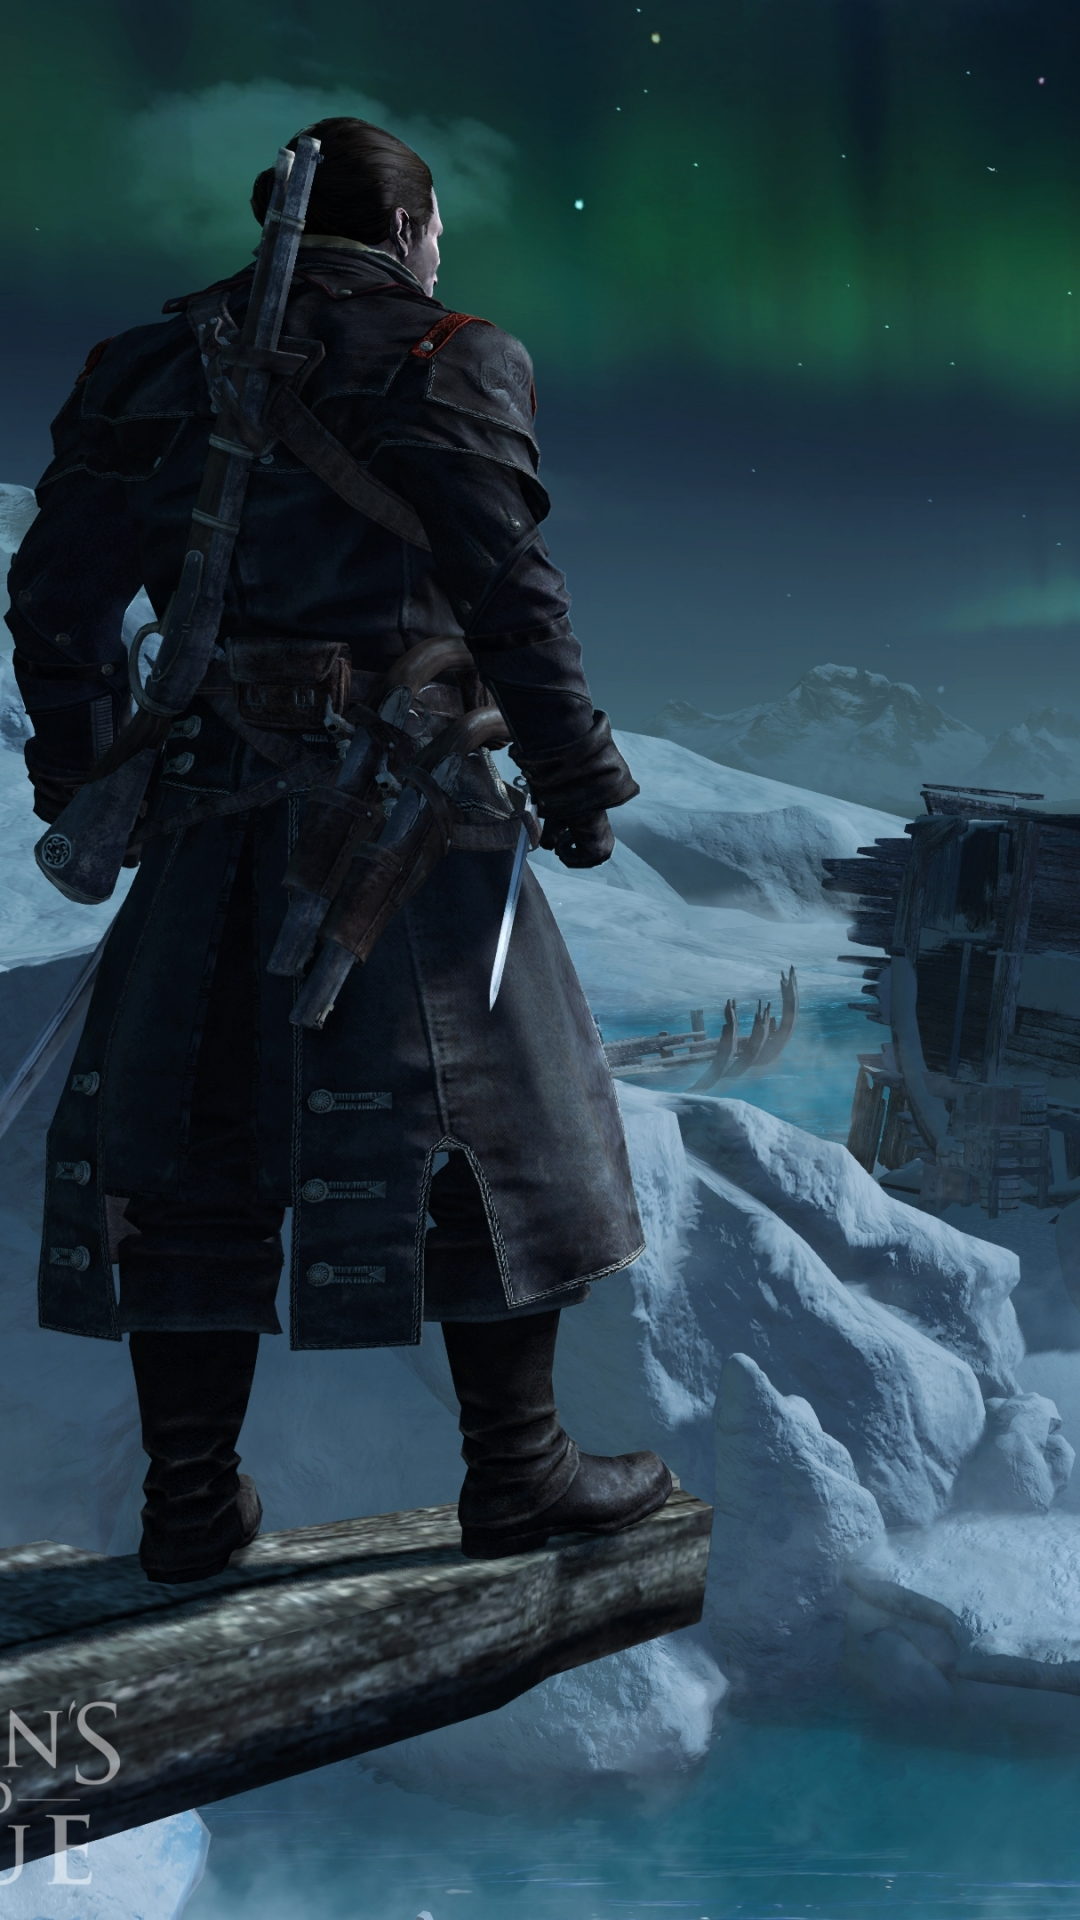 Video Game Assassin S Creed Rogue 1080x1920 Wallpaper Id 593946